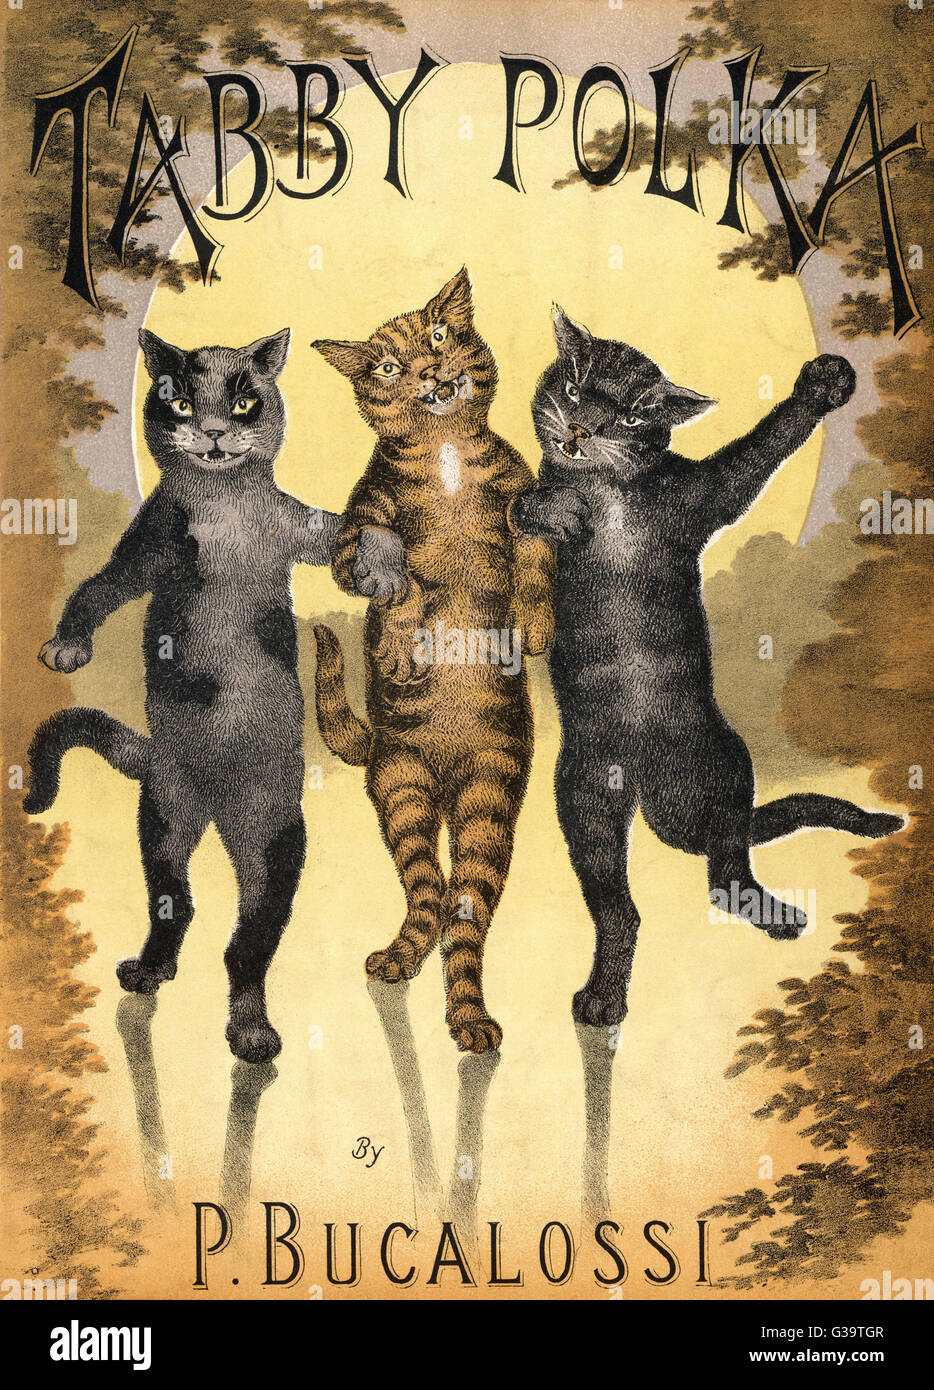 TABBY POLKA  A trio of cats with arms  linked dance a polka by  moonlight.      Date: 1890s - Stock Image